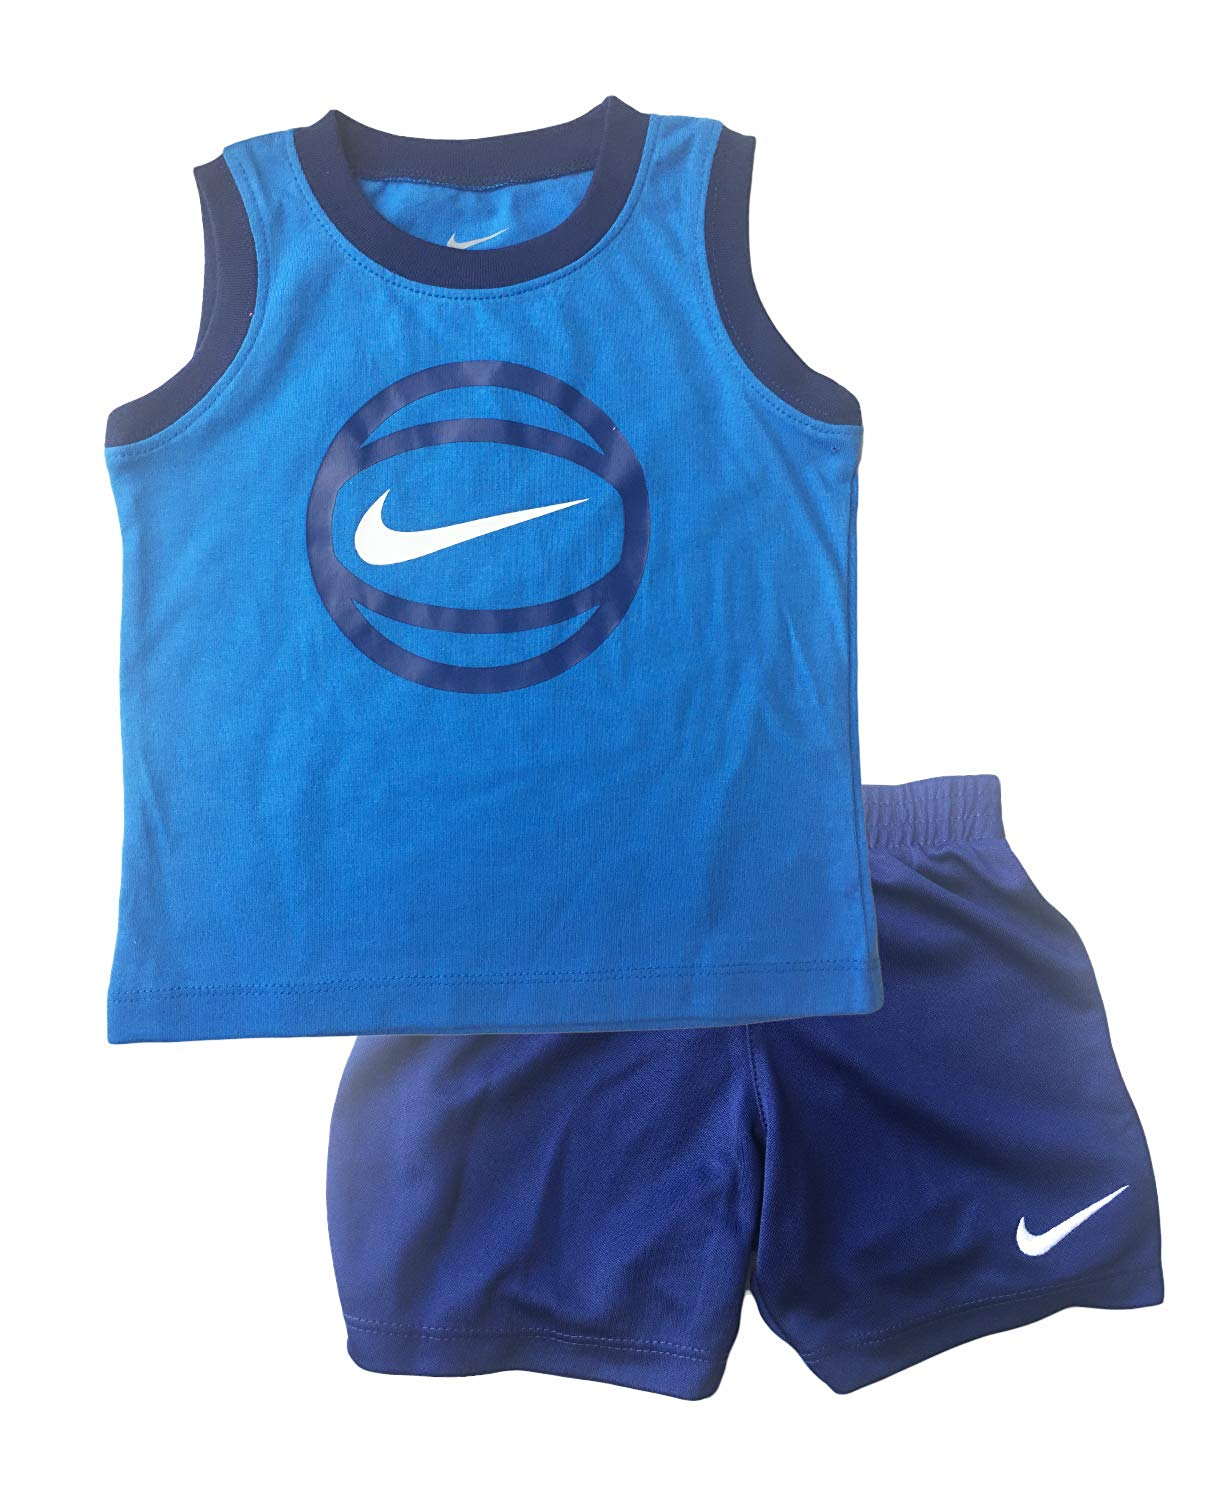 e937612b0acc3 2-PC Nike Boys Top and Shorts Set - Baby Clothes